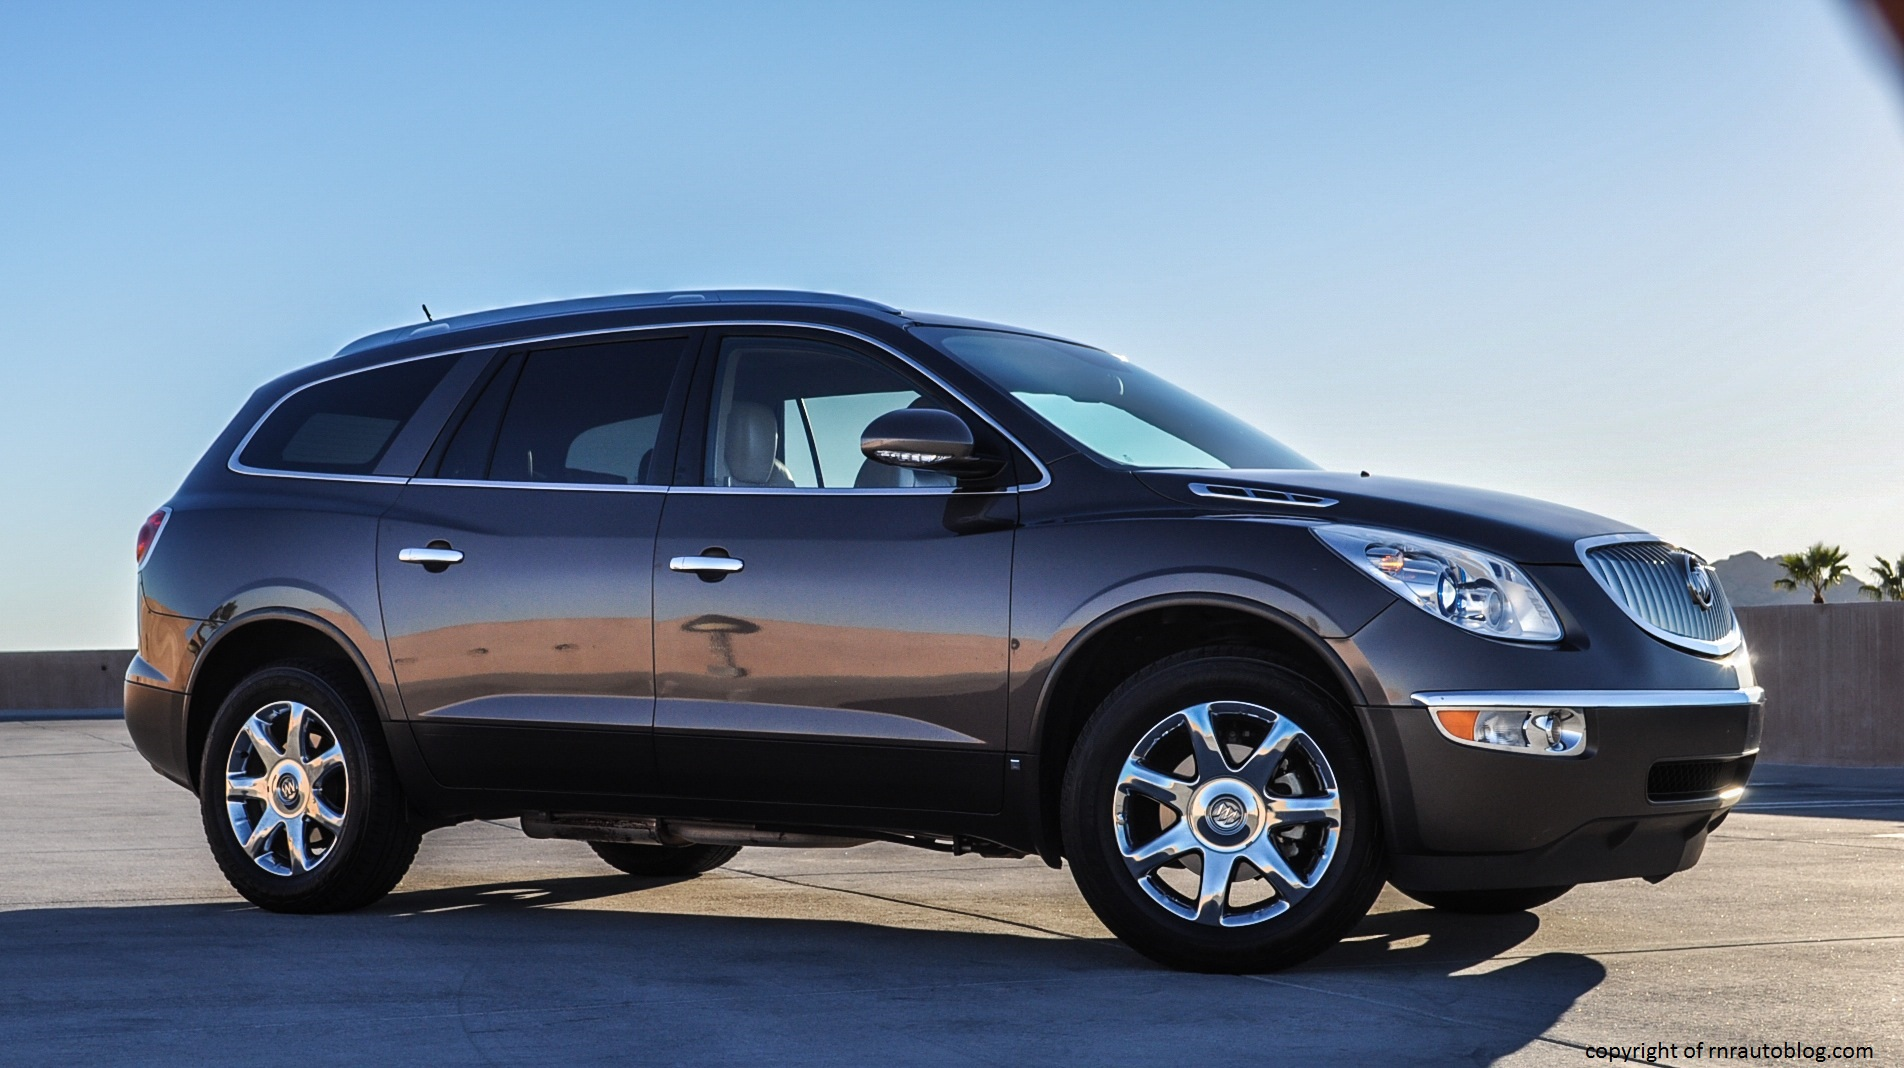 explanation and enclave buick interior release date colors